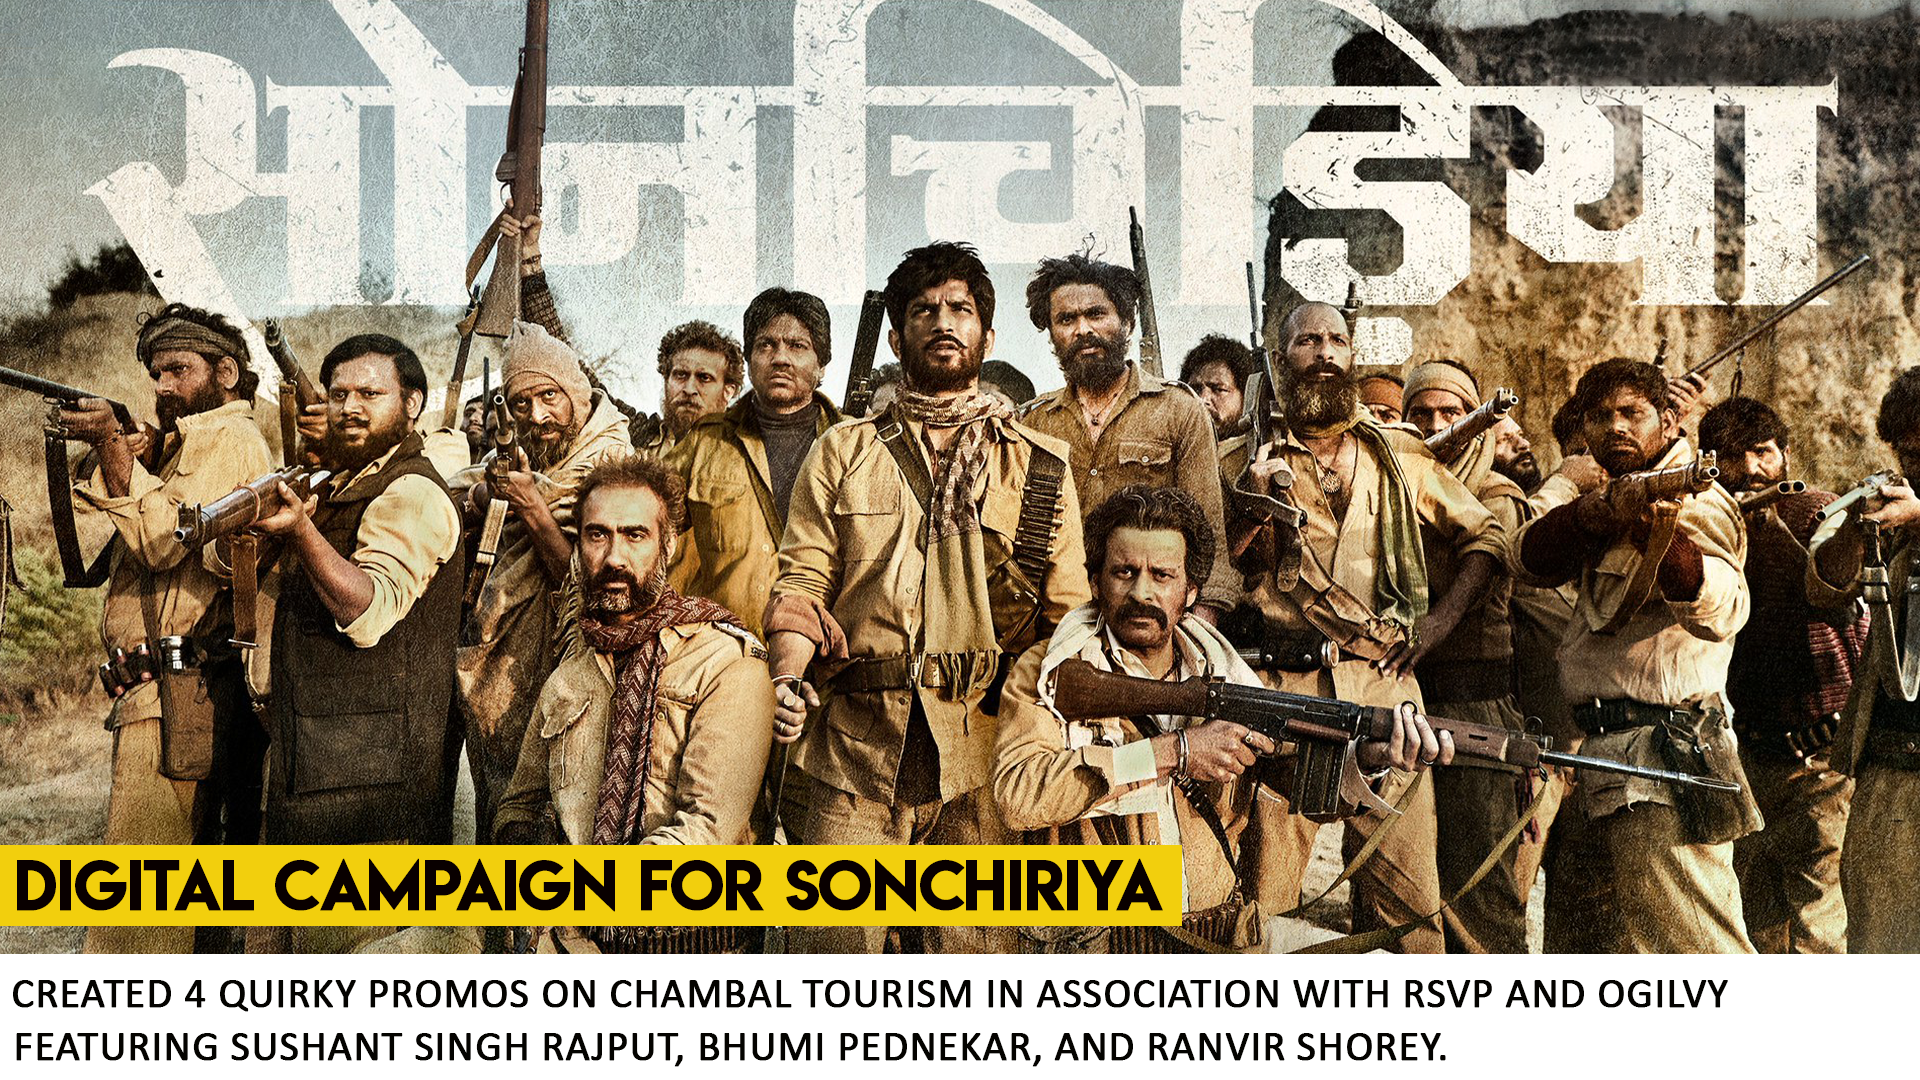 Sonchiriya Campaign by What Works